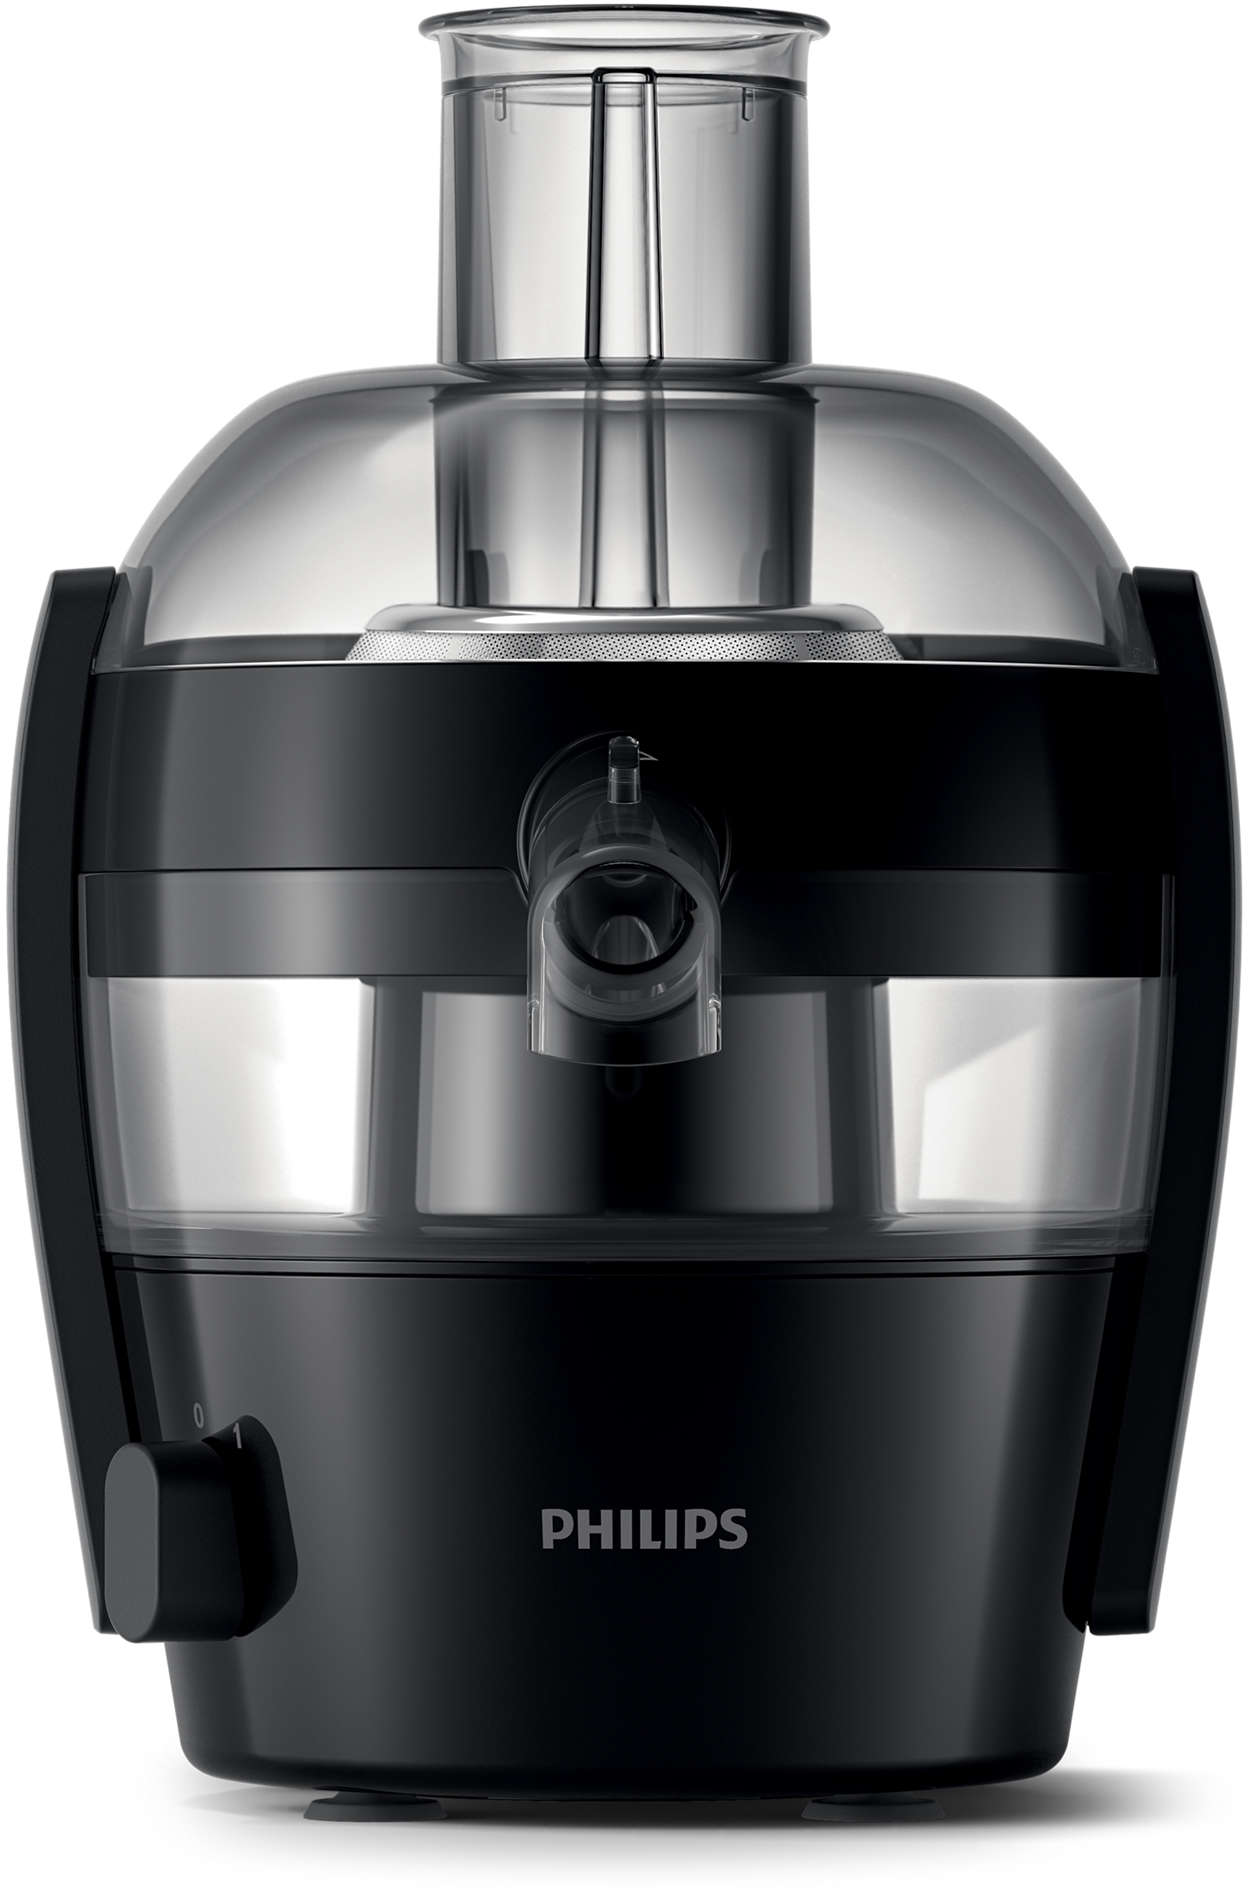 Philips Viva Collection Compact Juicer